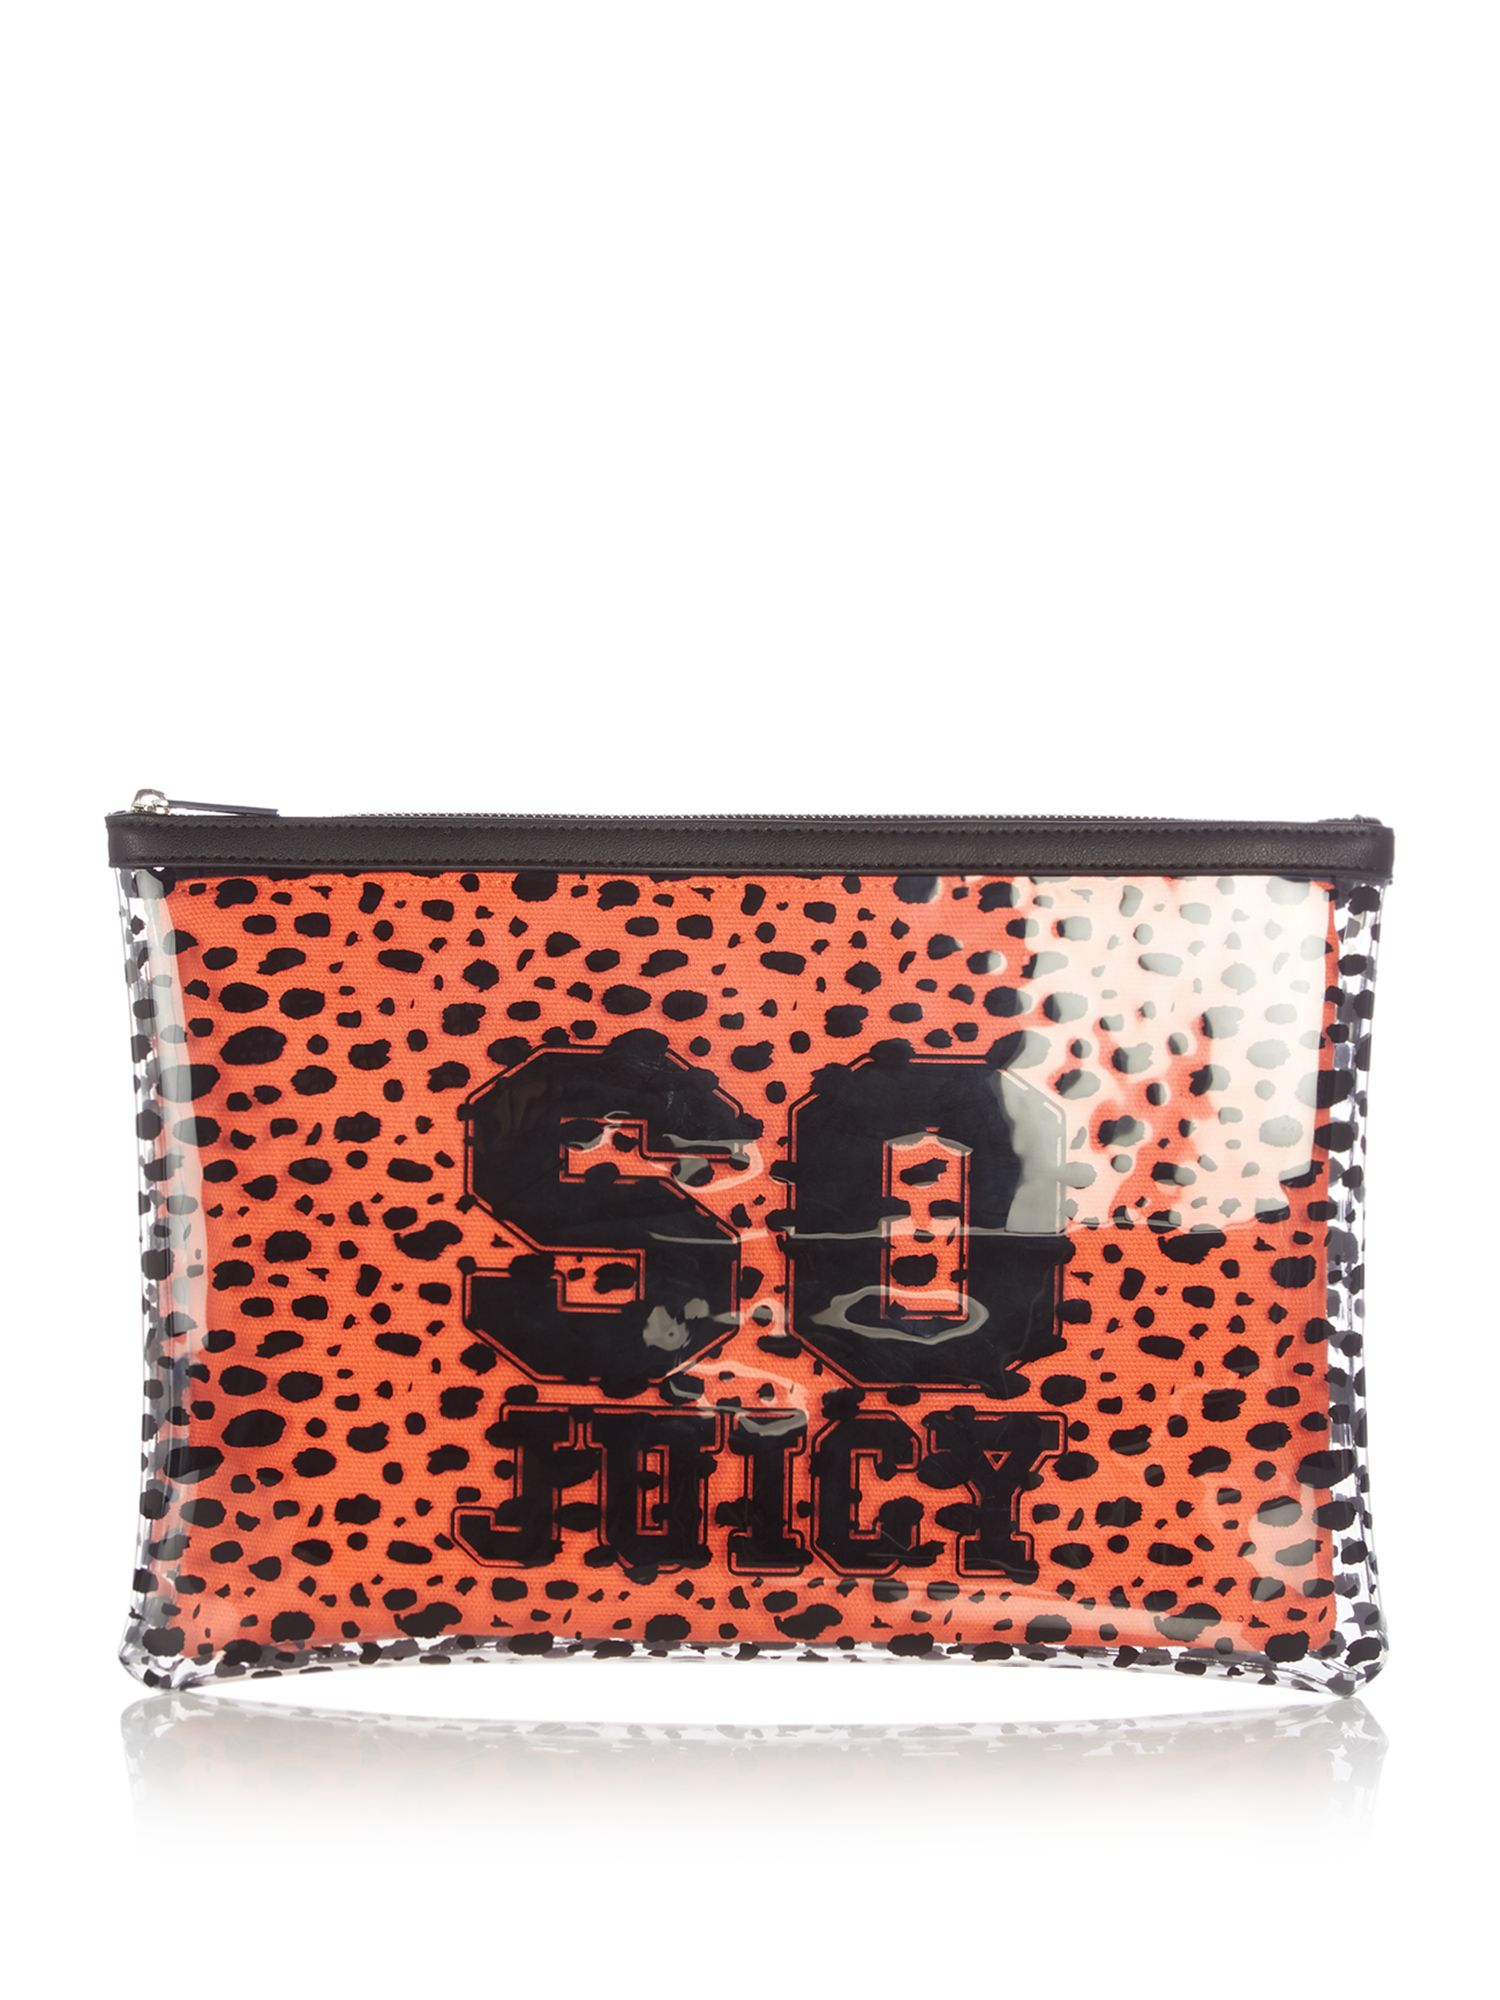 Juicy by Juicy Couture Zoey large pouch, Black Multi